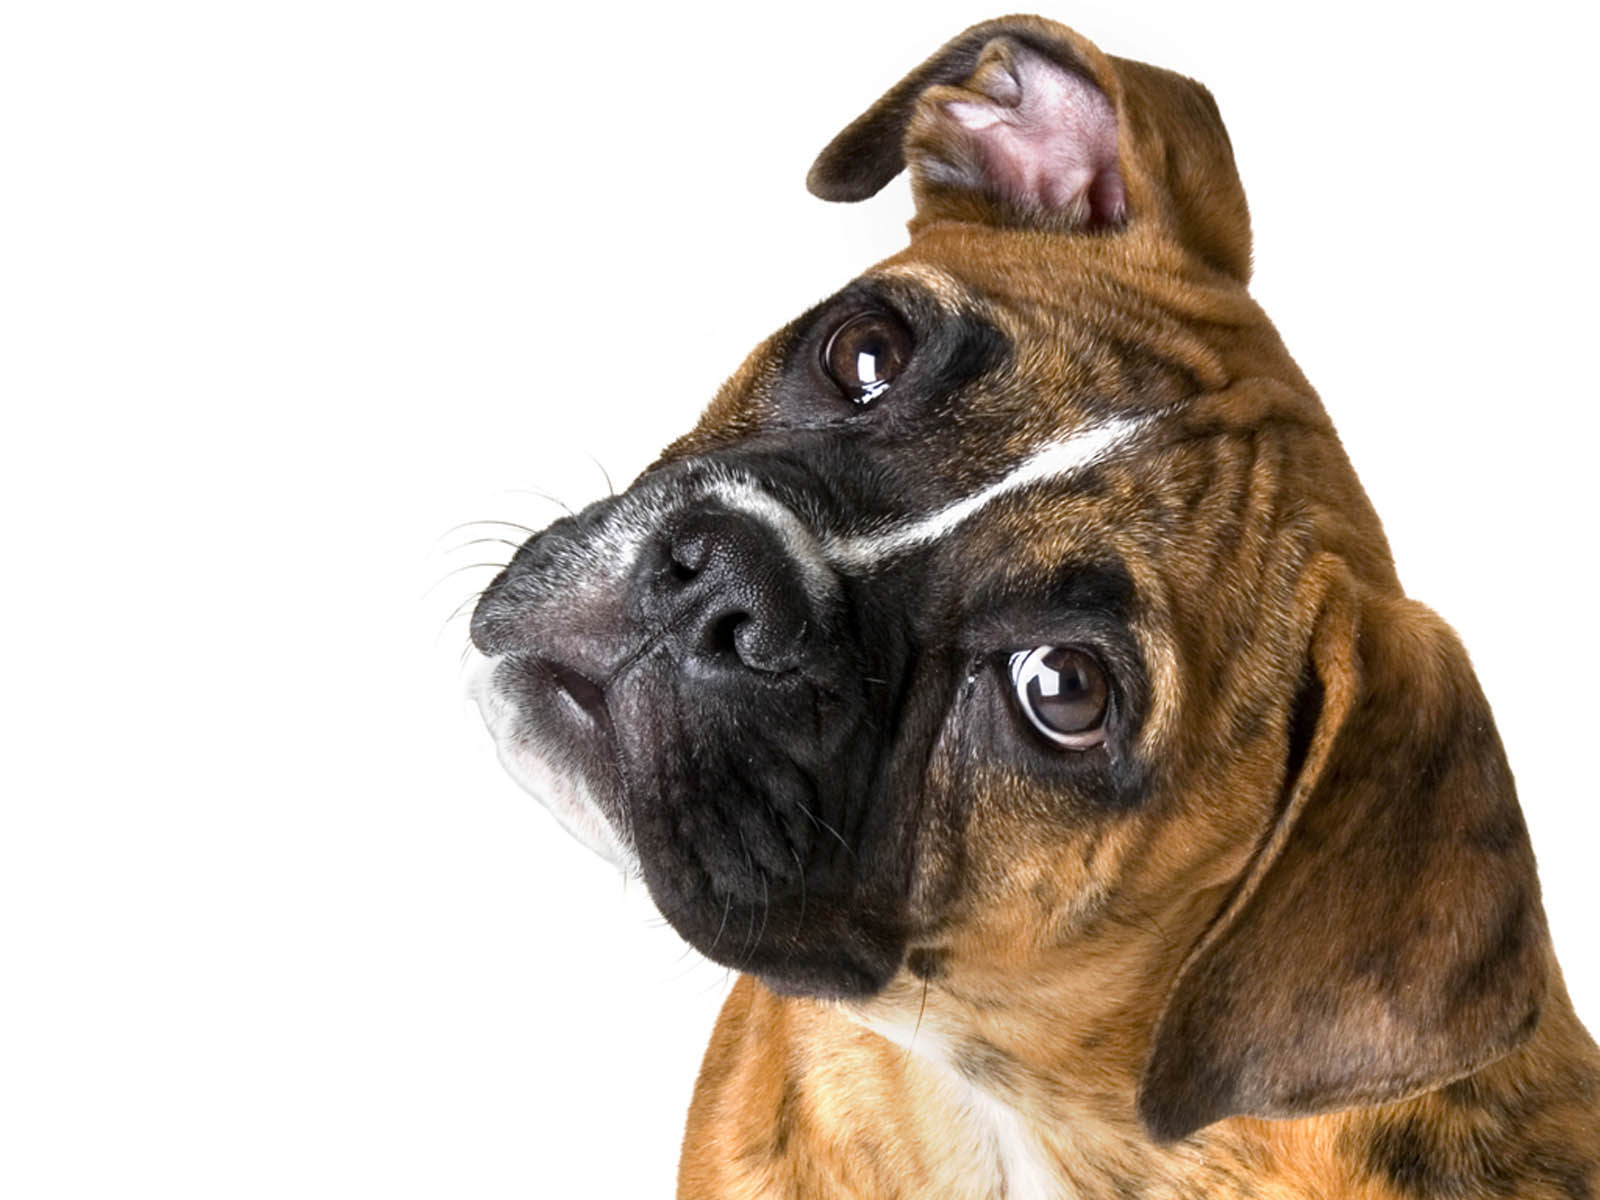 Desktop hd images of pregnant boxer dogs - PNG HD Images Of Dogs